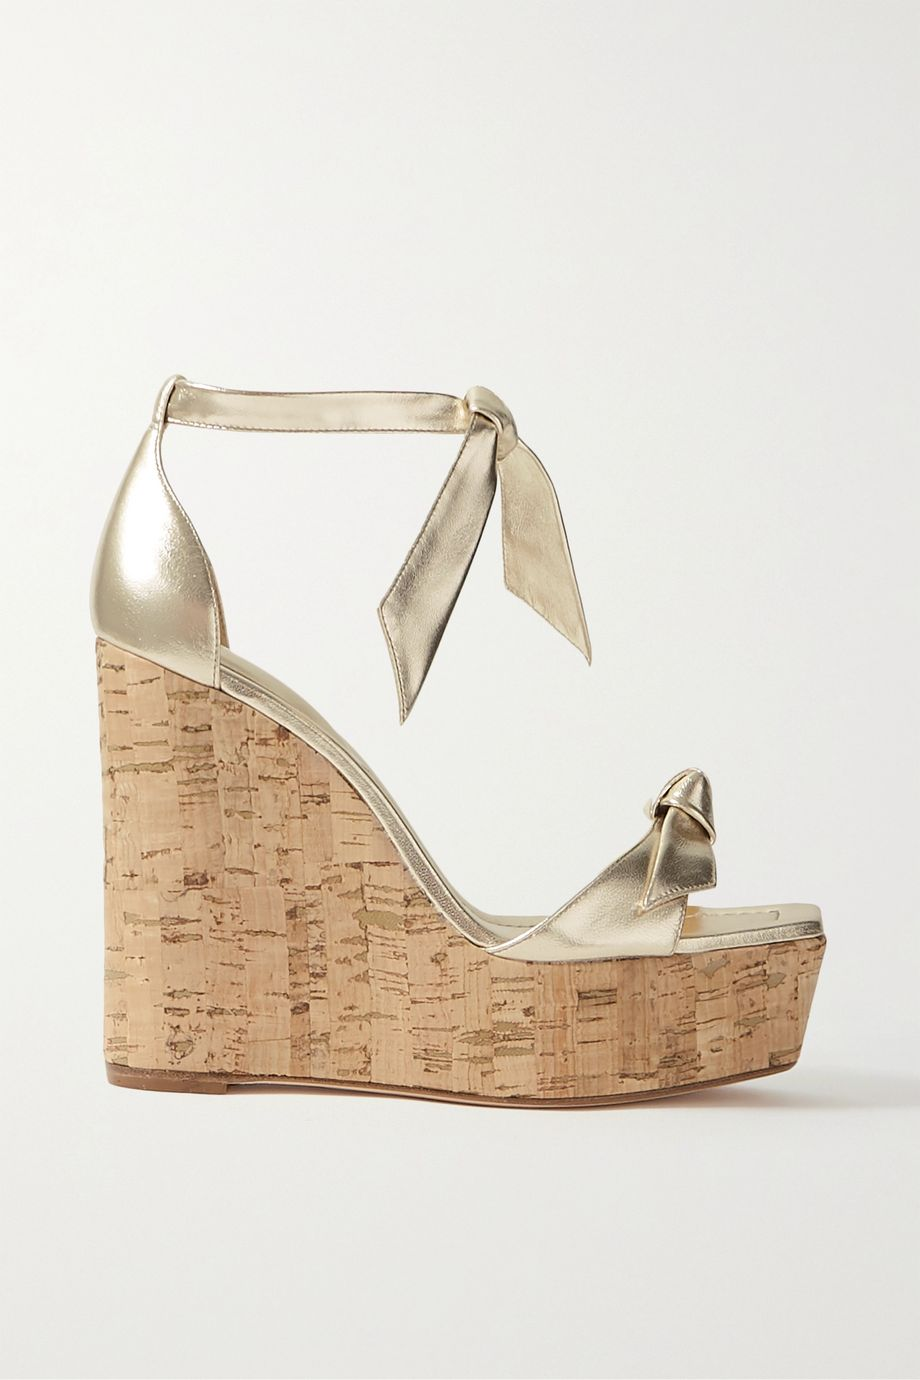 Alexandre Birman Clarita bow-embellished metallic leather wedge sandals